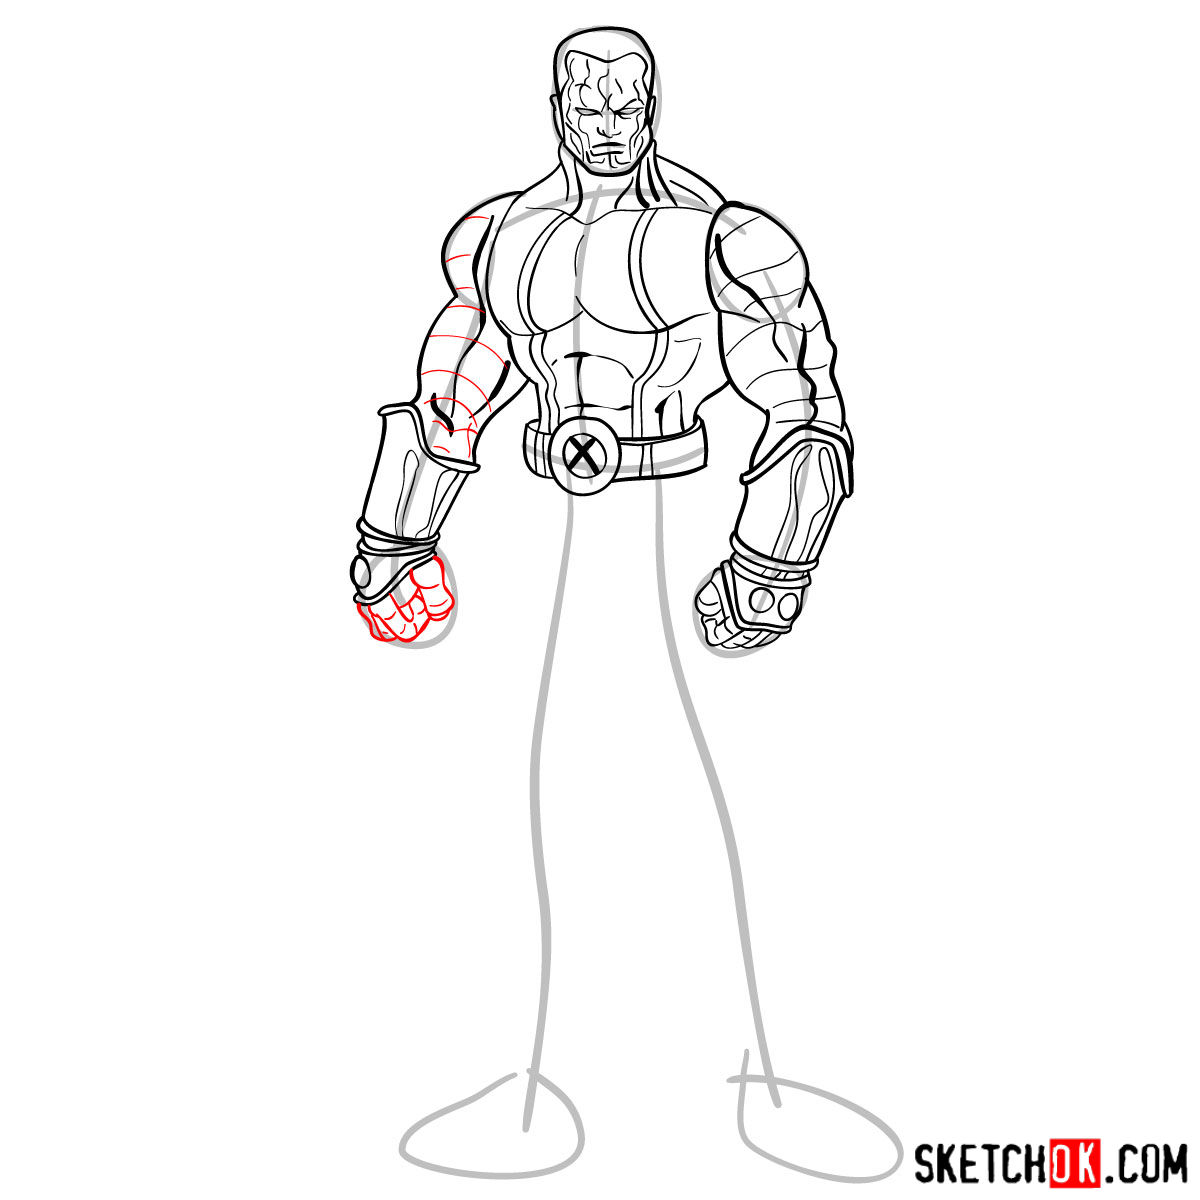 How to draw Colossus from Deadpool film and X-Men series - step 11